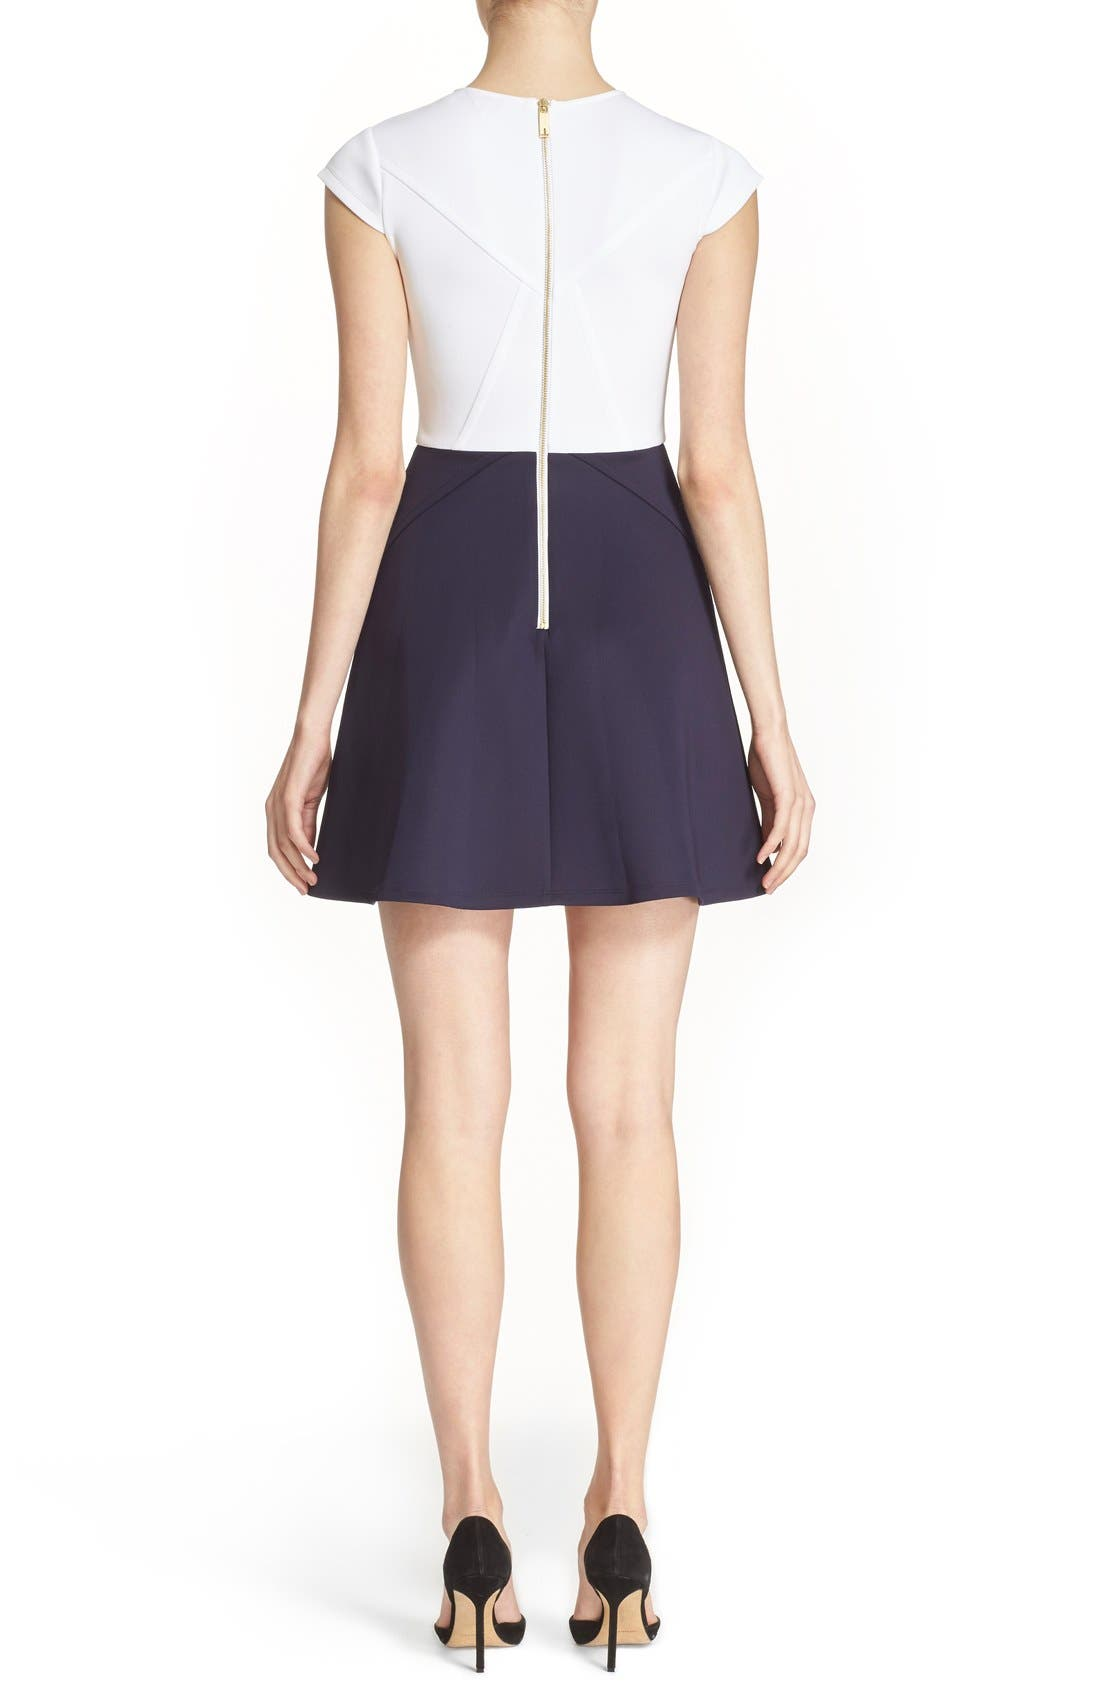 TED BAKER LONDON, 'AABRR' Colorblock Cap Sleeve Skater Dress, Alternate thumbnail 3, color, 402